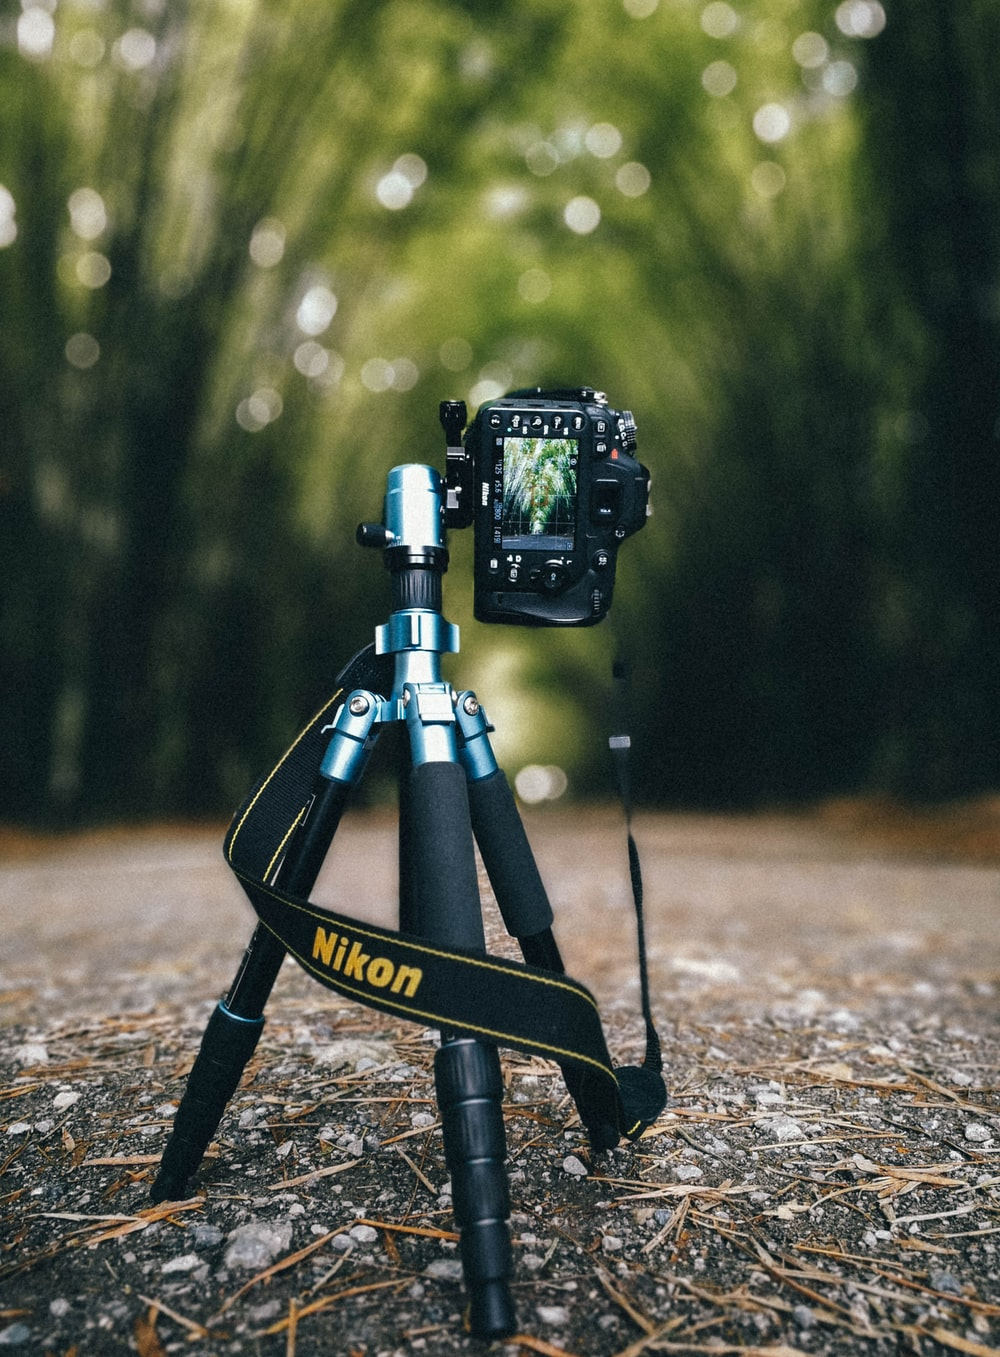 camera on tripod in the middle of the road surrounded with trees during day